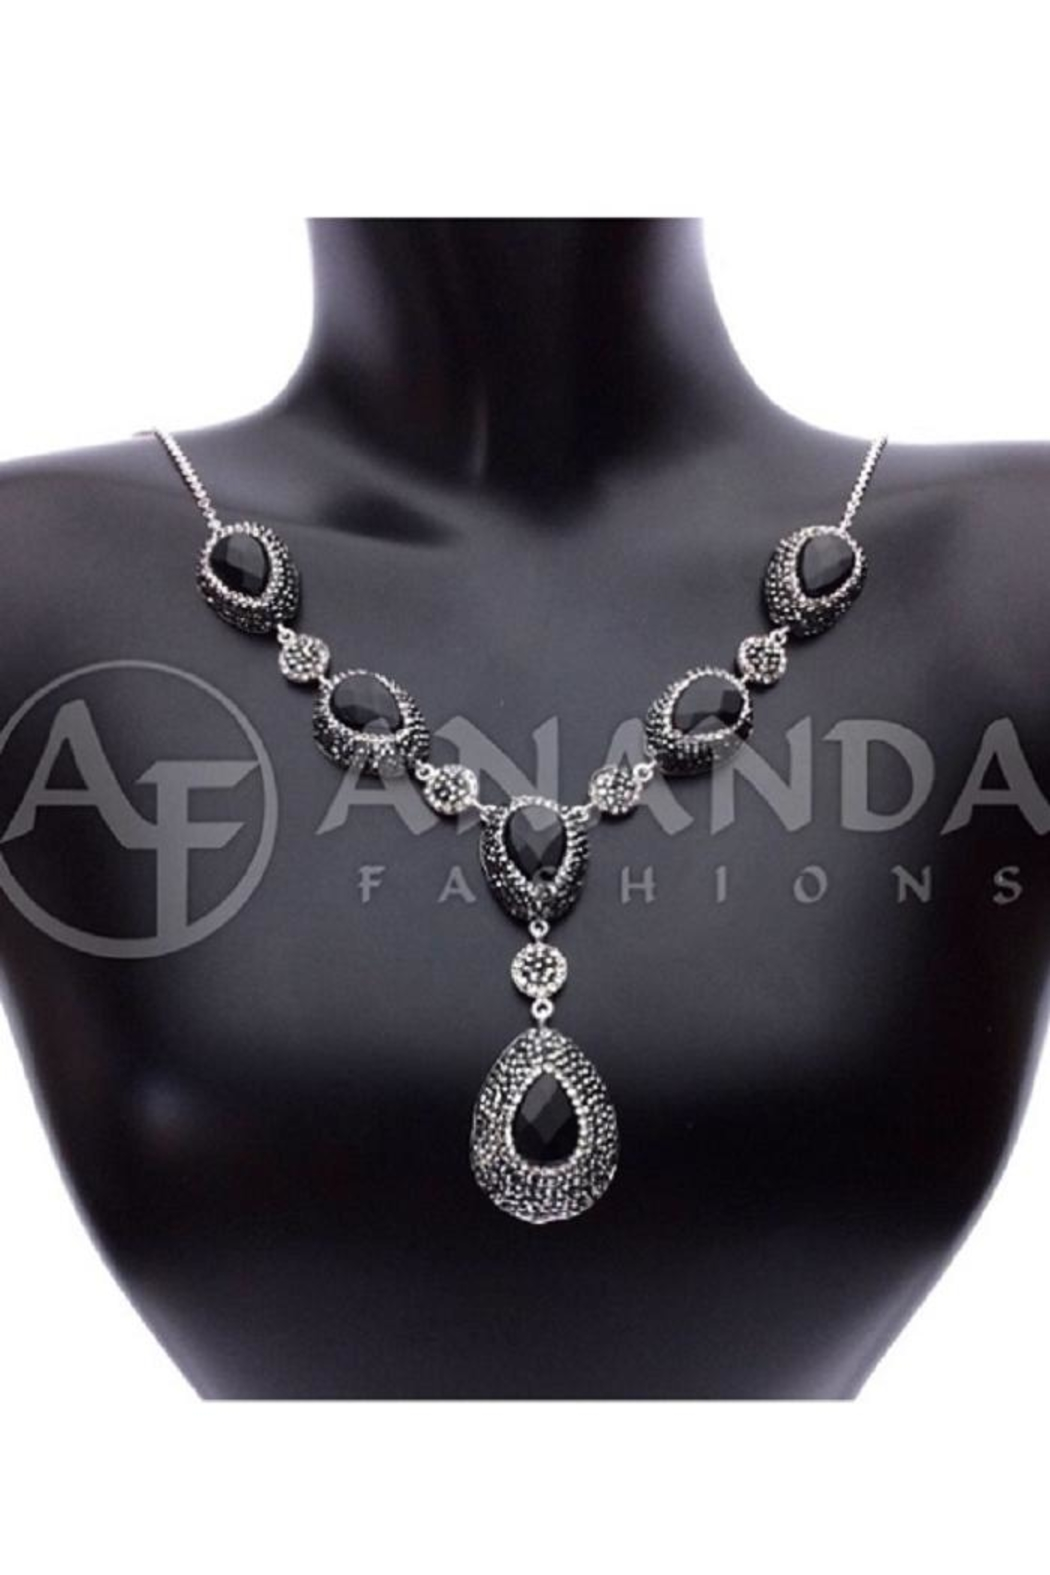 shop jewellery black jewelry pbs org product spoon onyx necklace silver